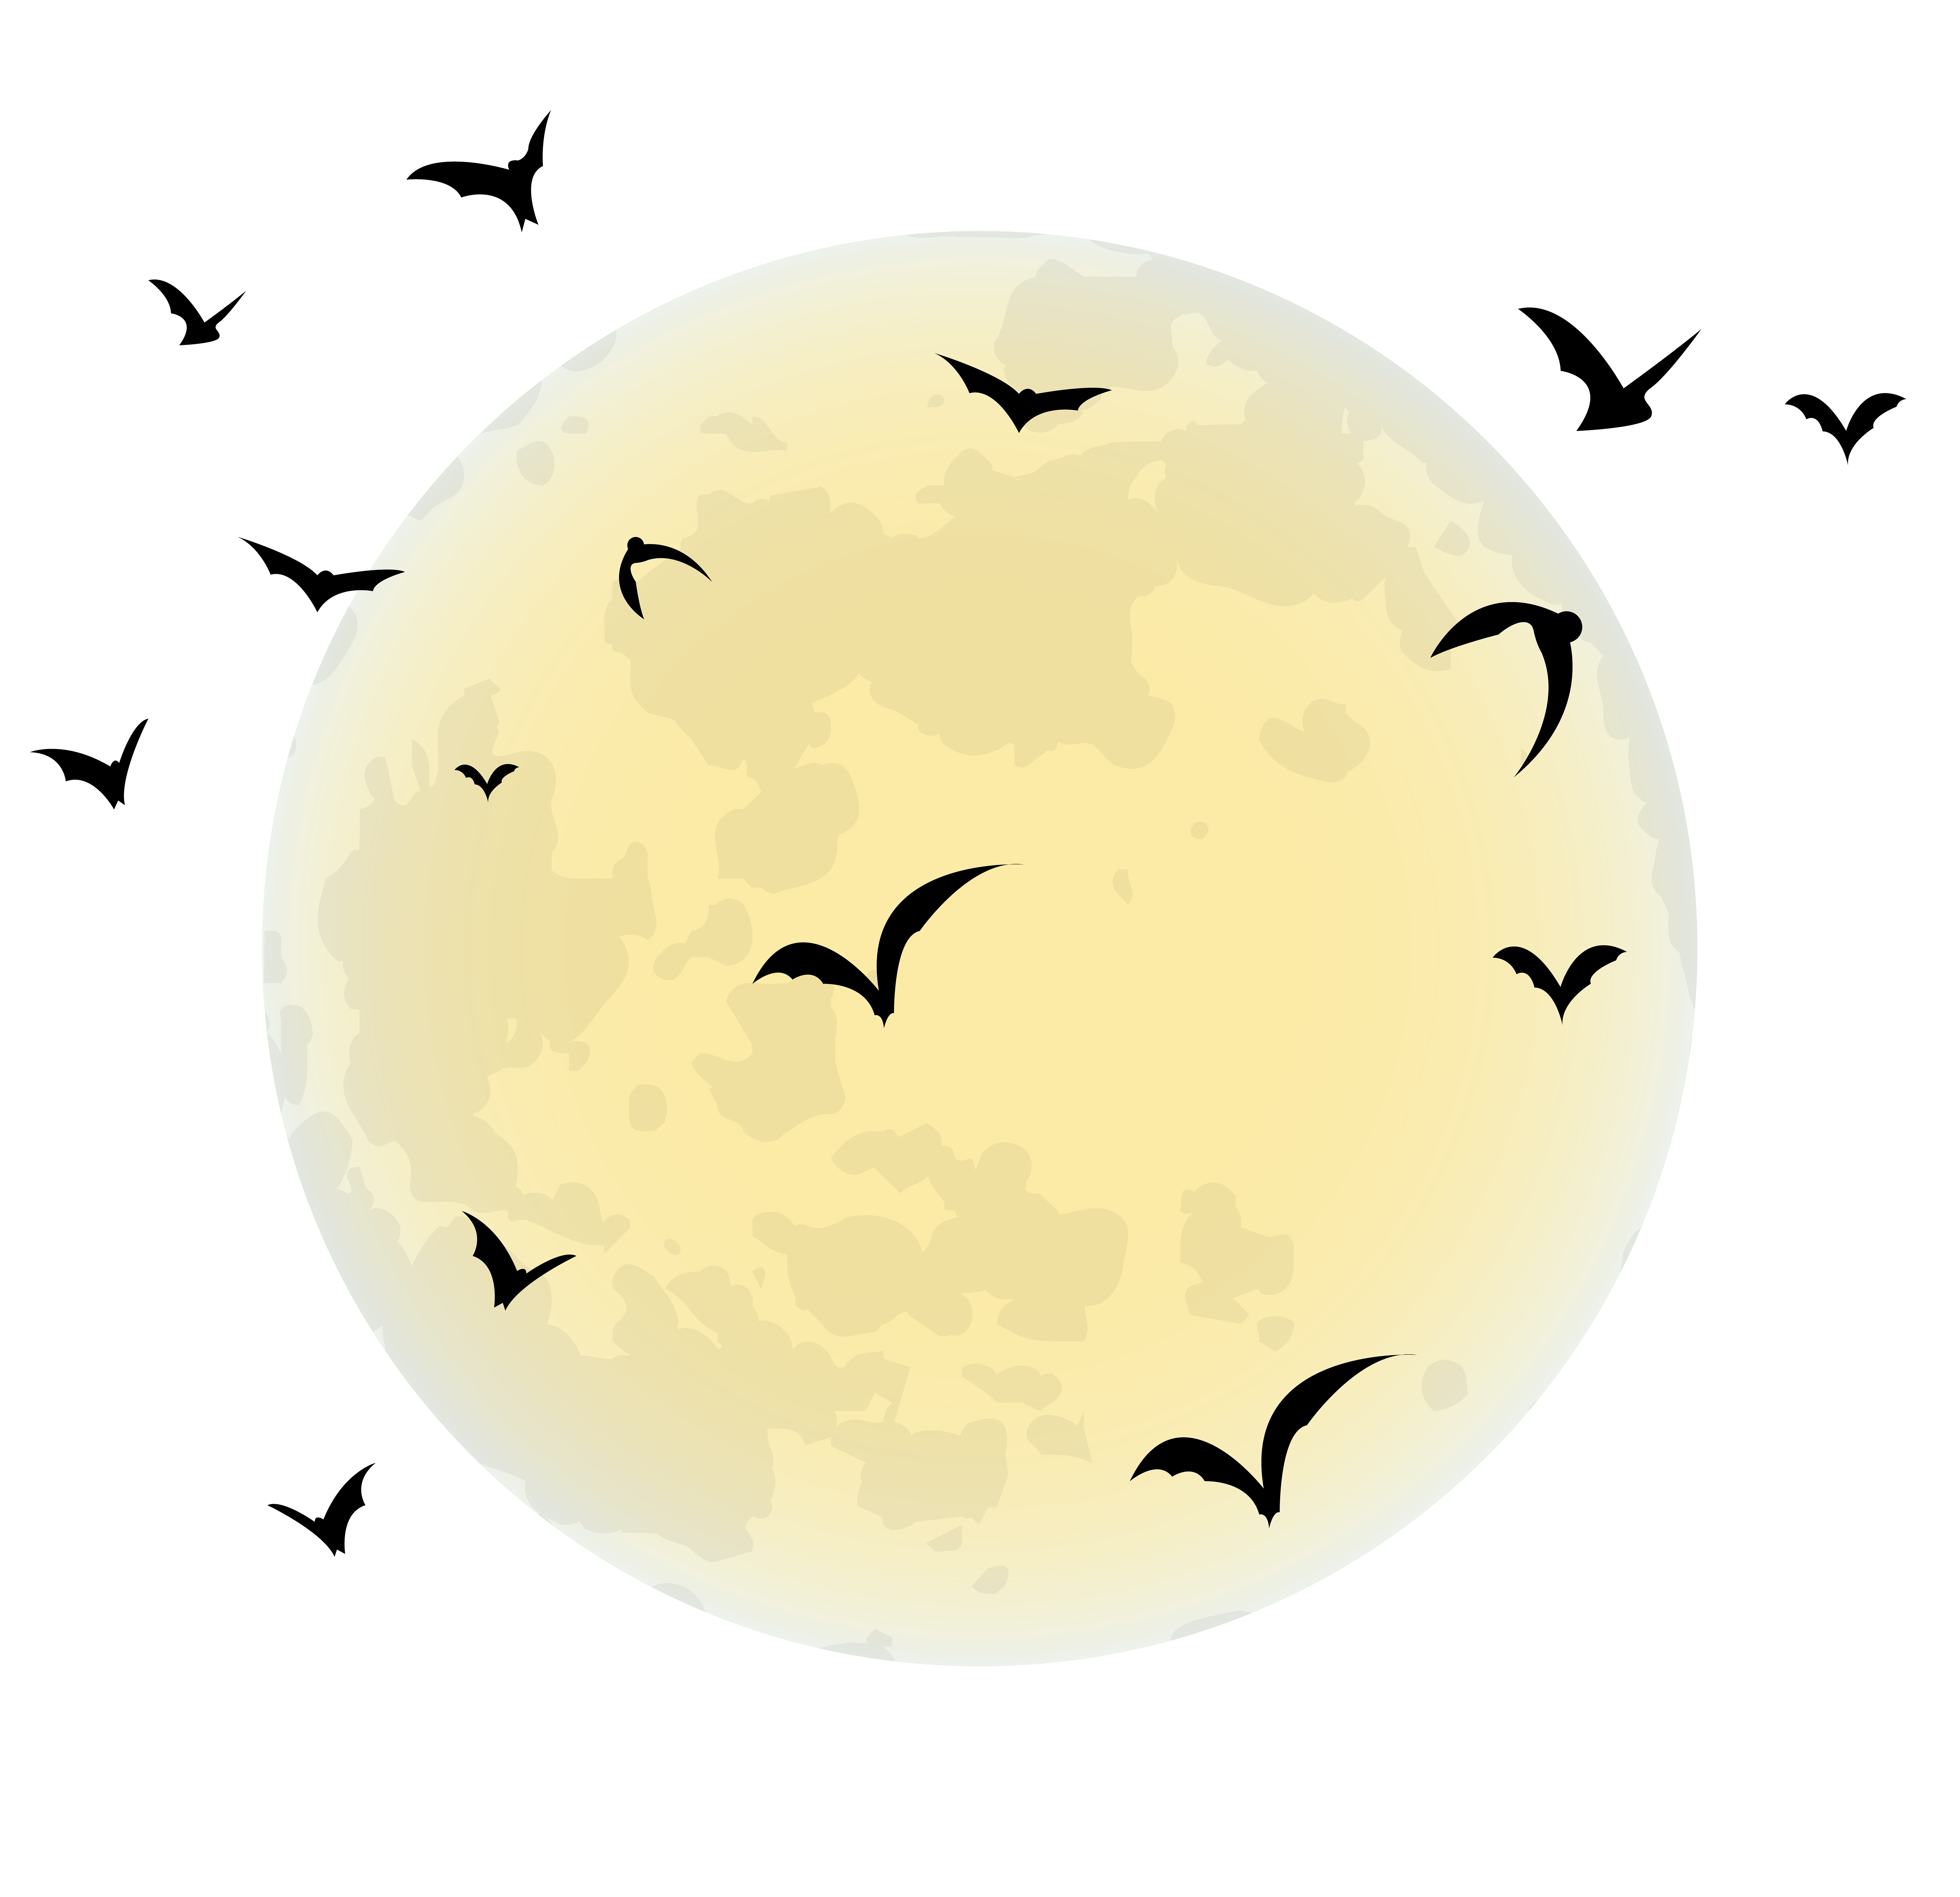 Full moon free clipart picture freeuse library Halloween Moon PNG Clip Art Image | Gallery Yopriceville - High ... picture freeuse library